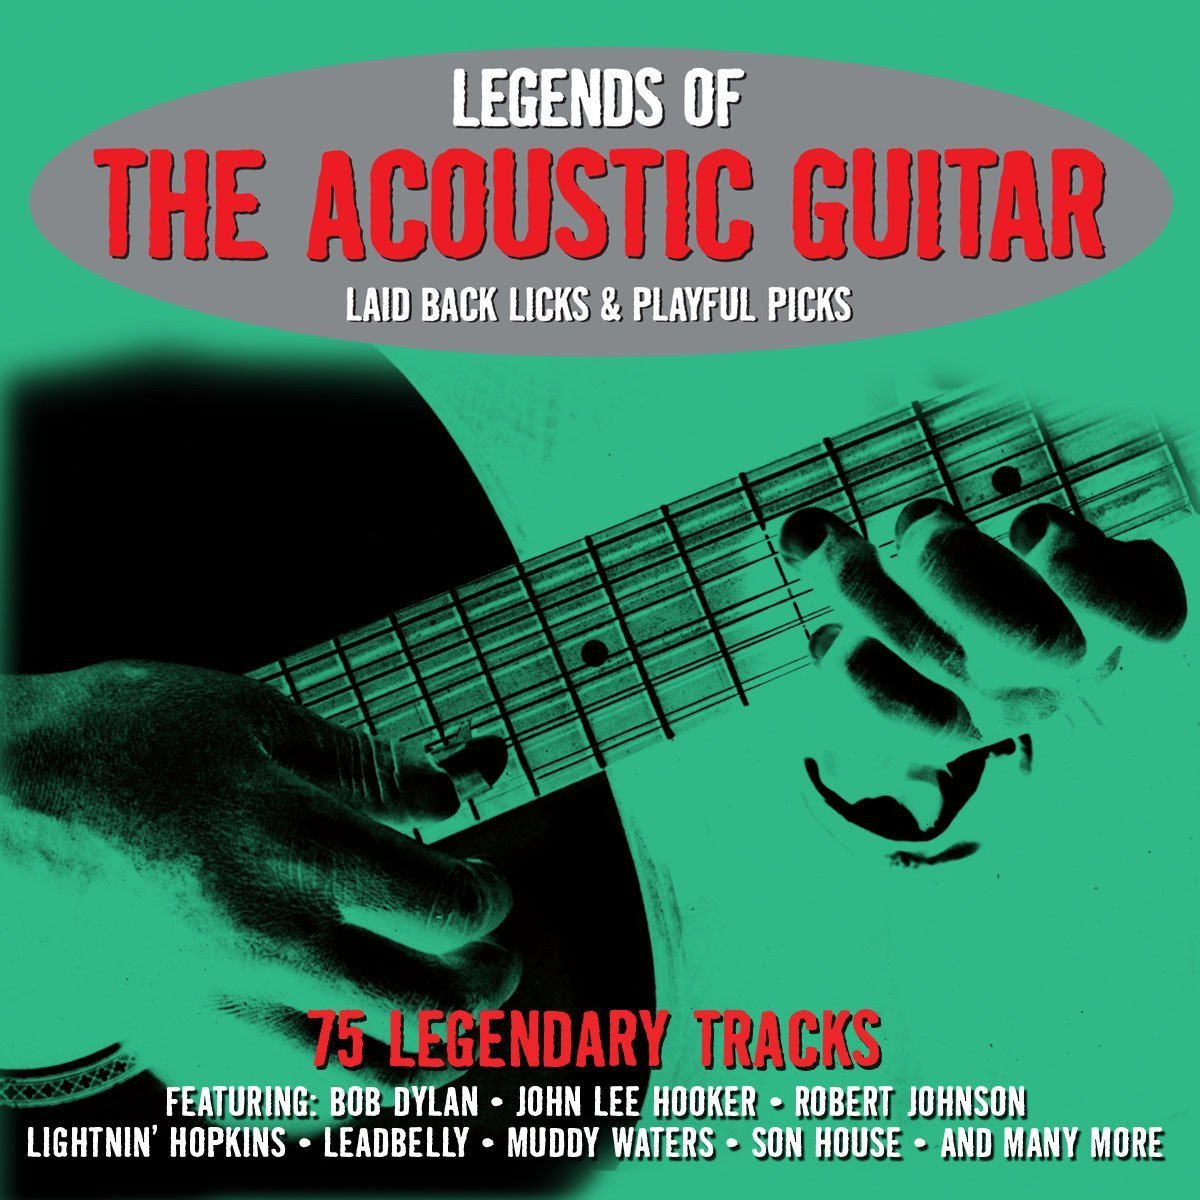 Legends of the Acoustic Guitar - 75 Legendary Tracks (3 CDs)